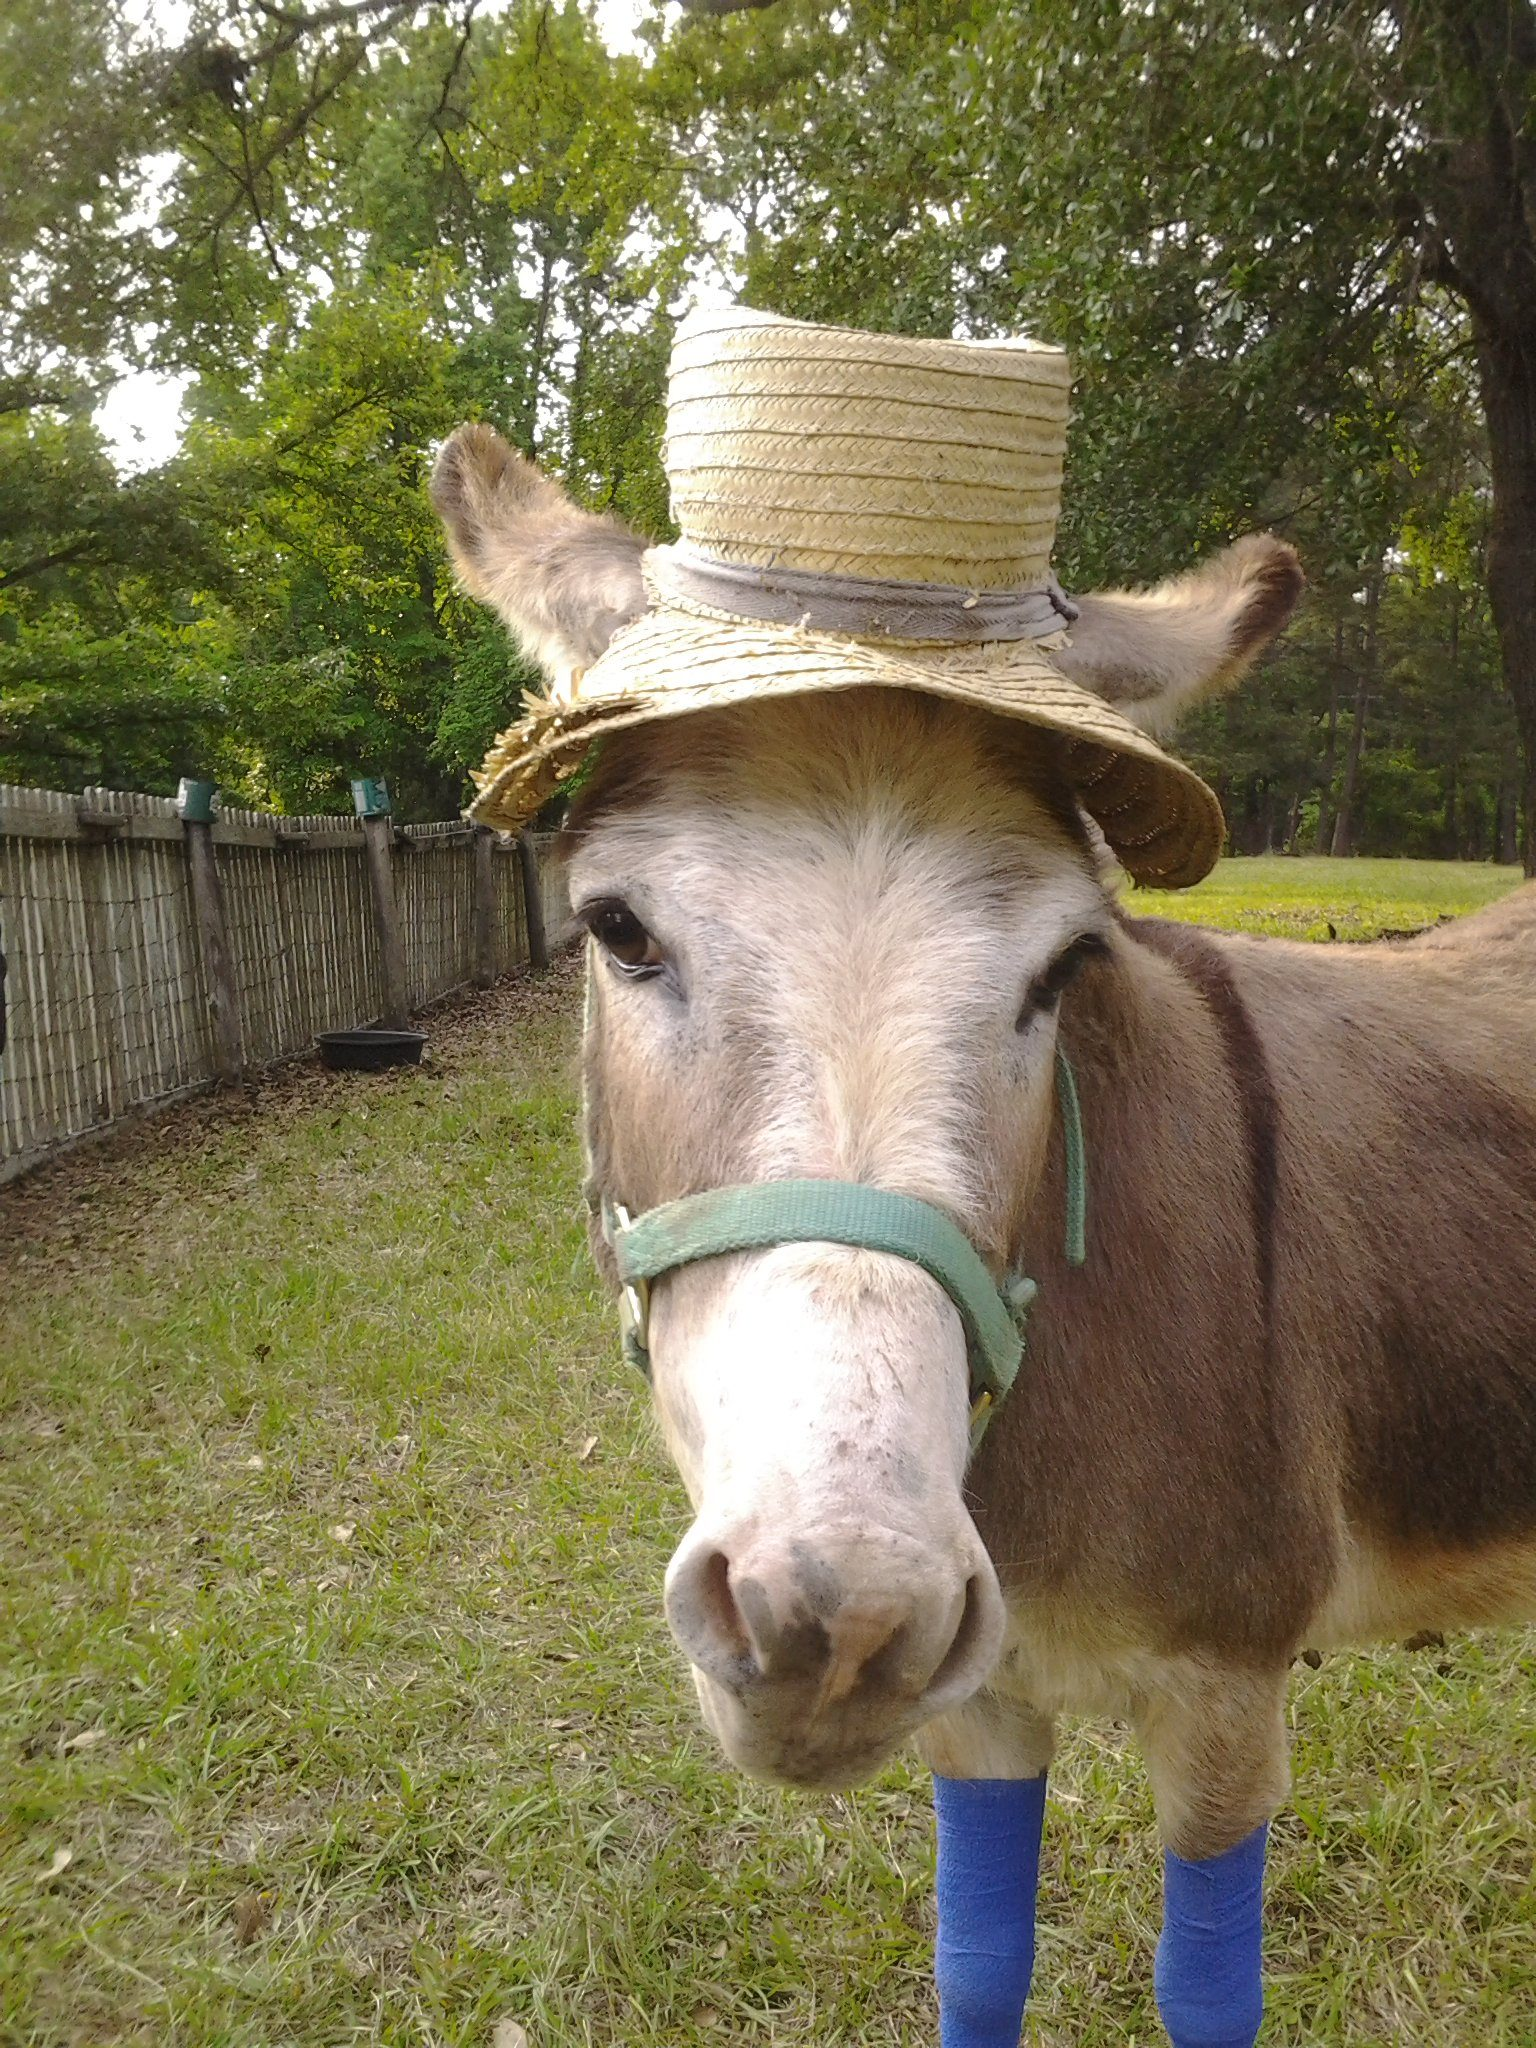 horse with cowboy hat